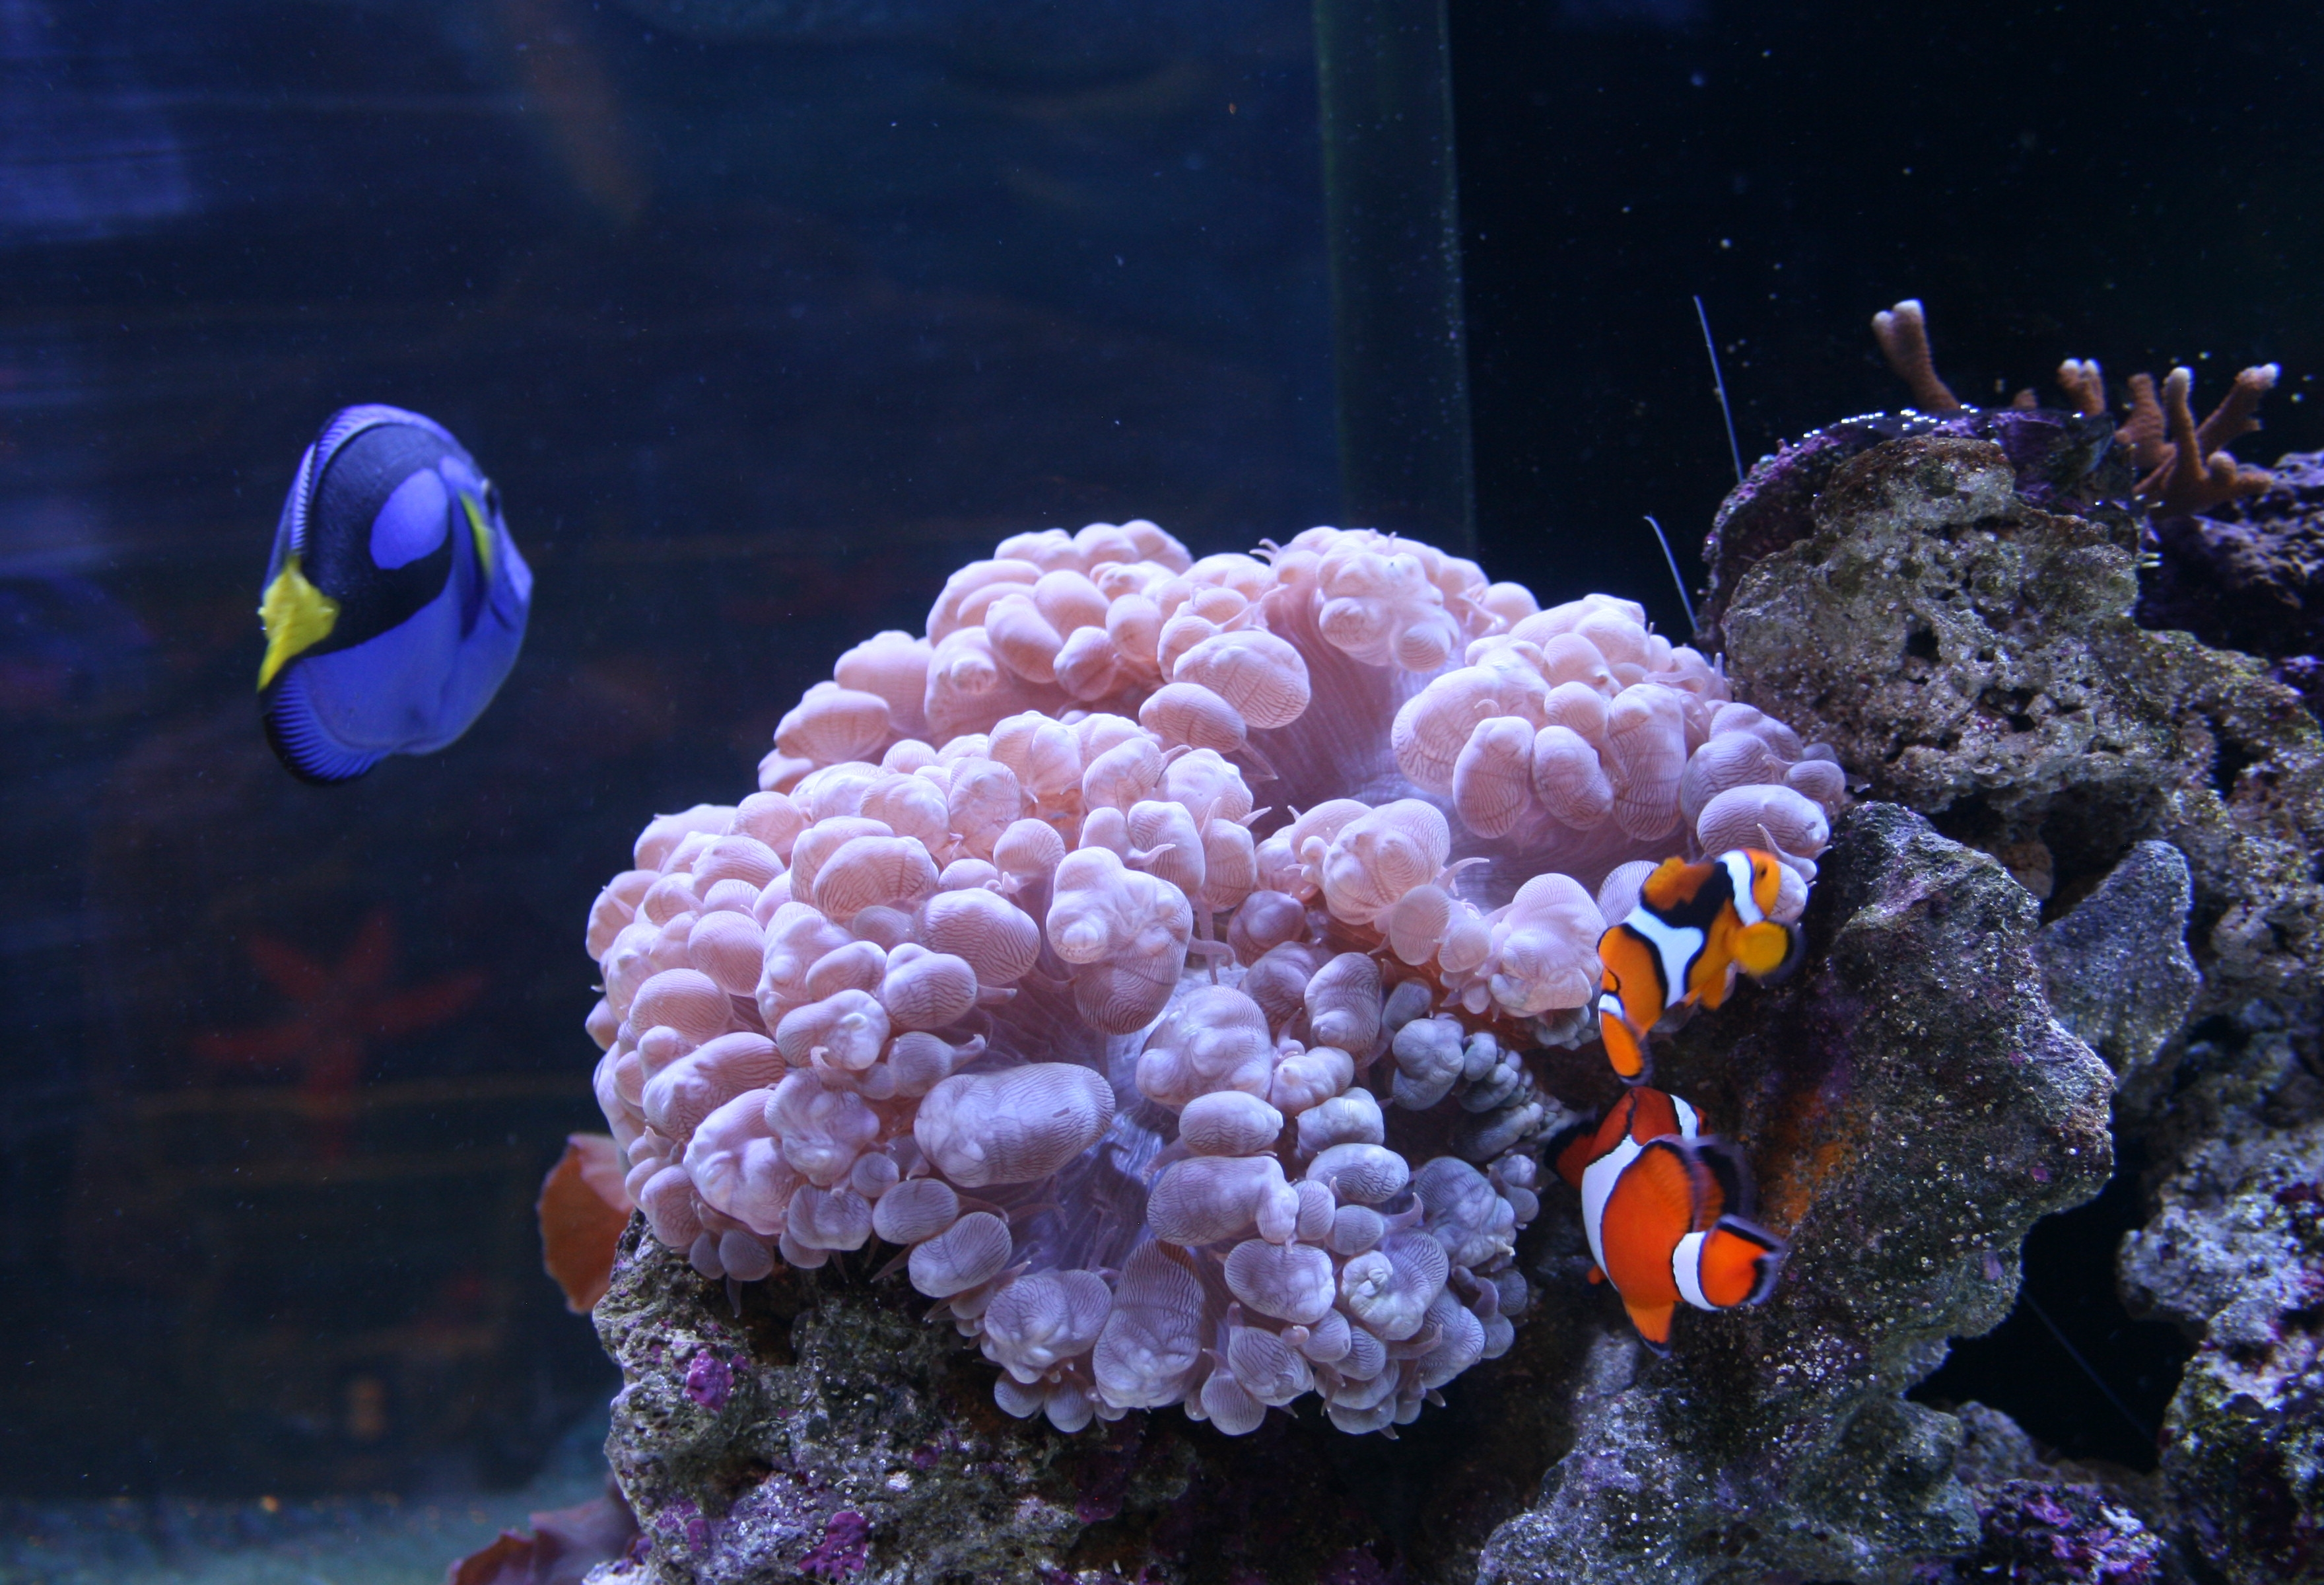 Blue tang orange clown fish bubble coral as eye see for Blue clown fish